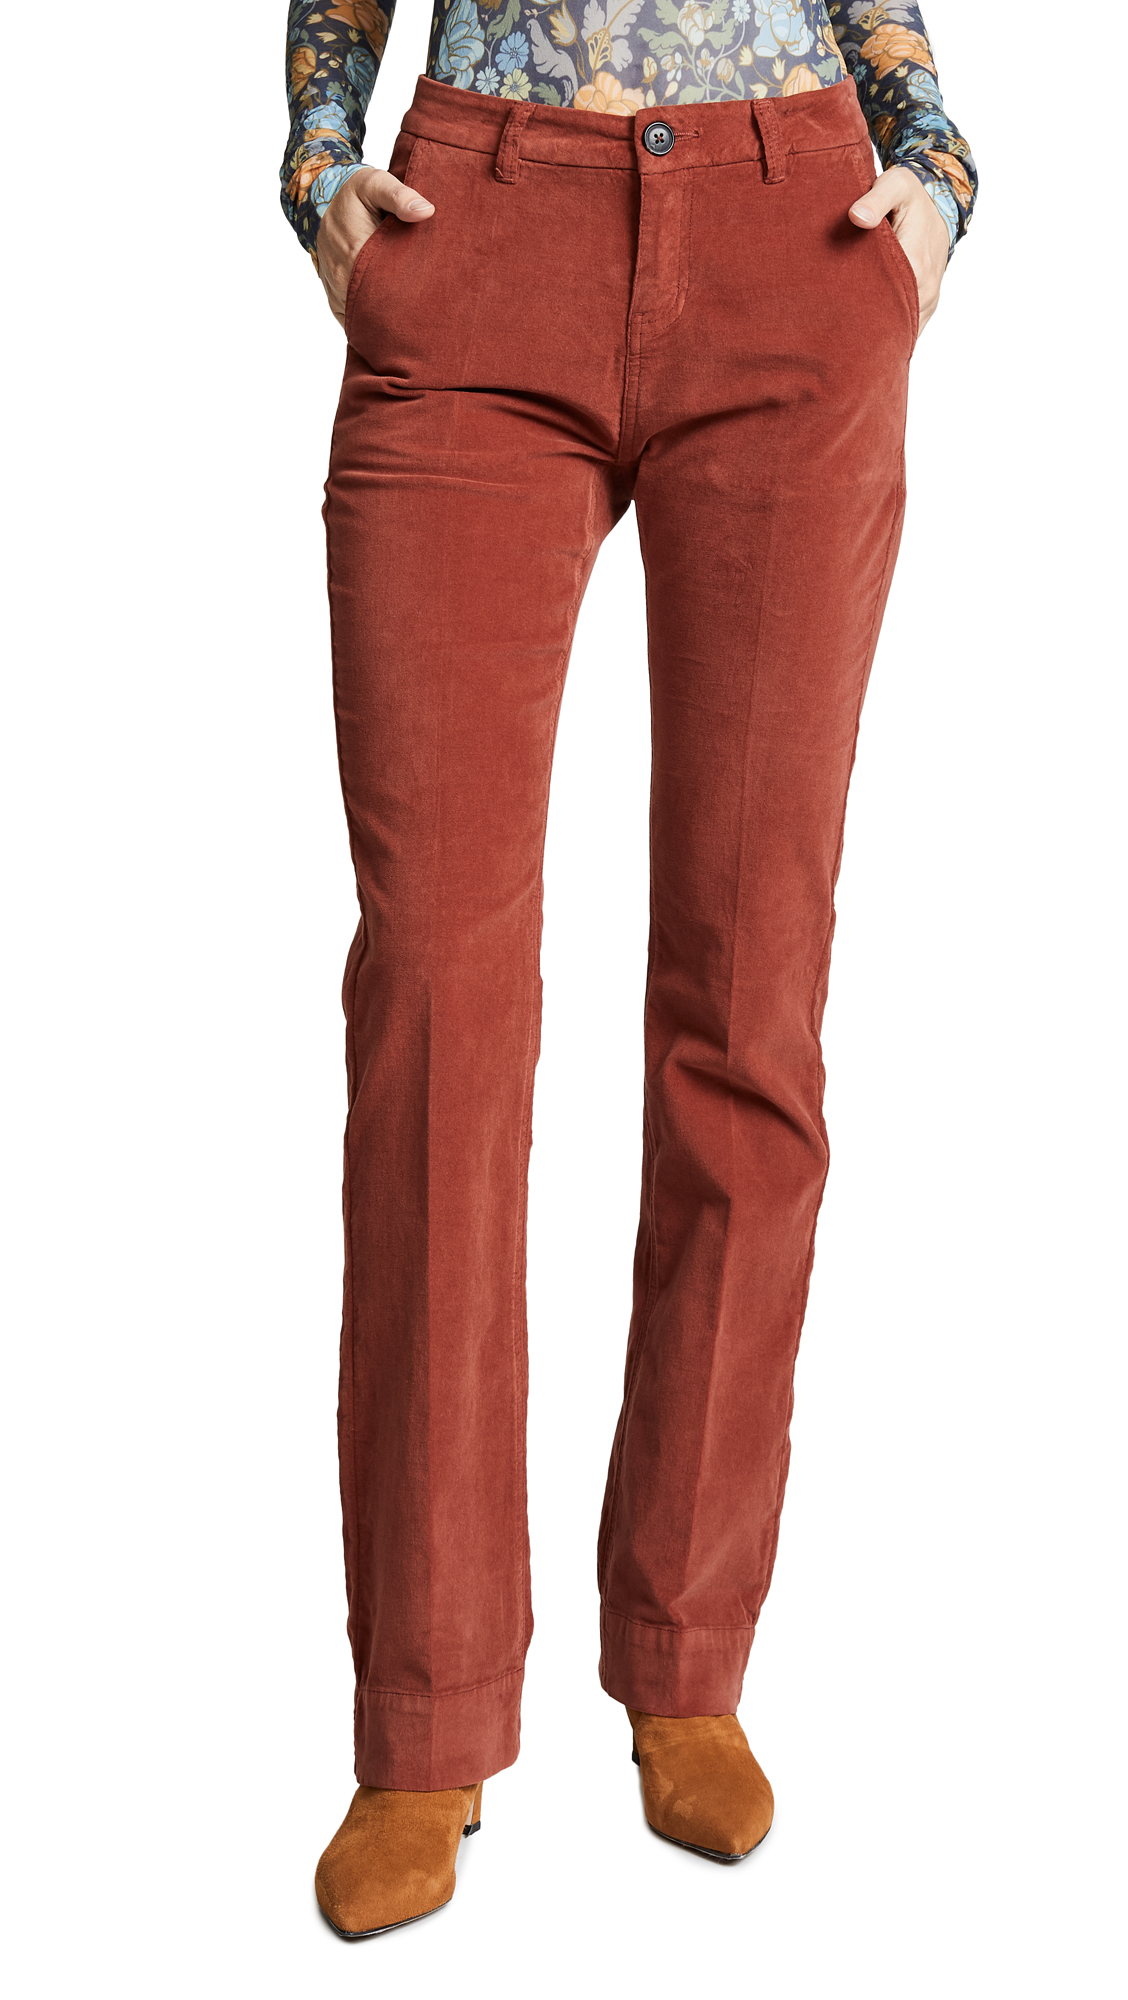 MKT Studio Plimo Pants In Rust